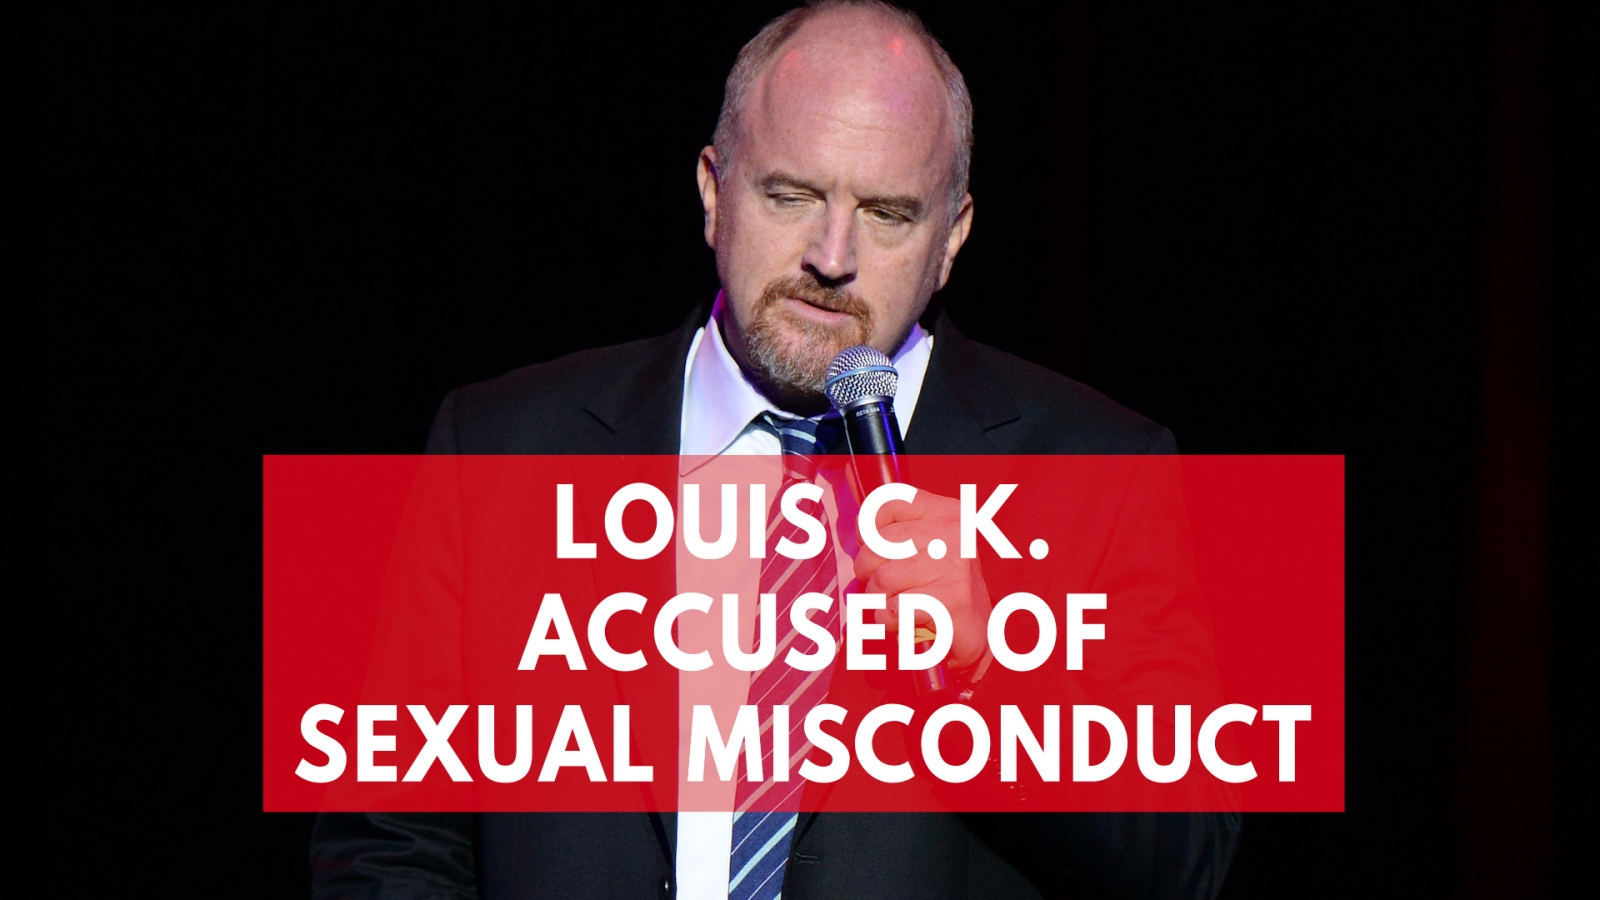 comedian-louis-c-k-accused-of-sexual-misconduct-by-five-women